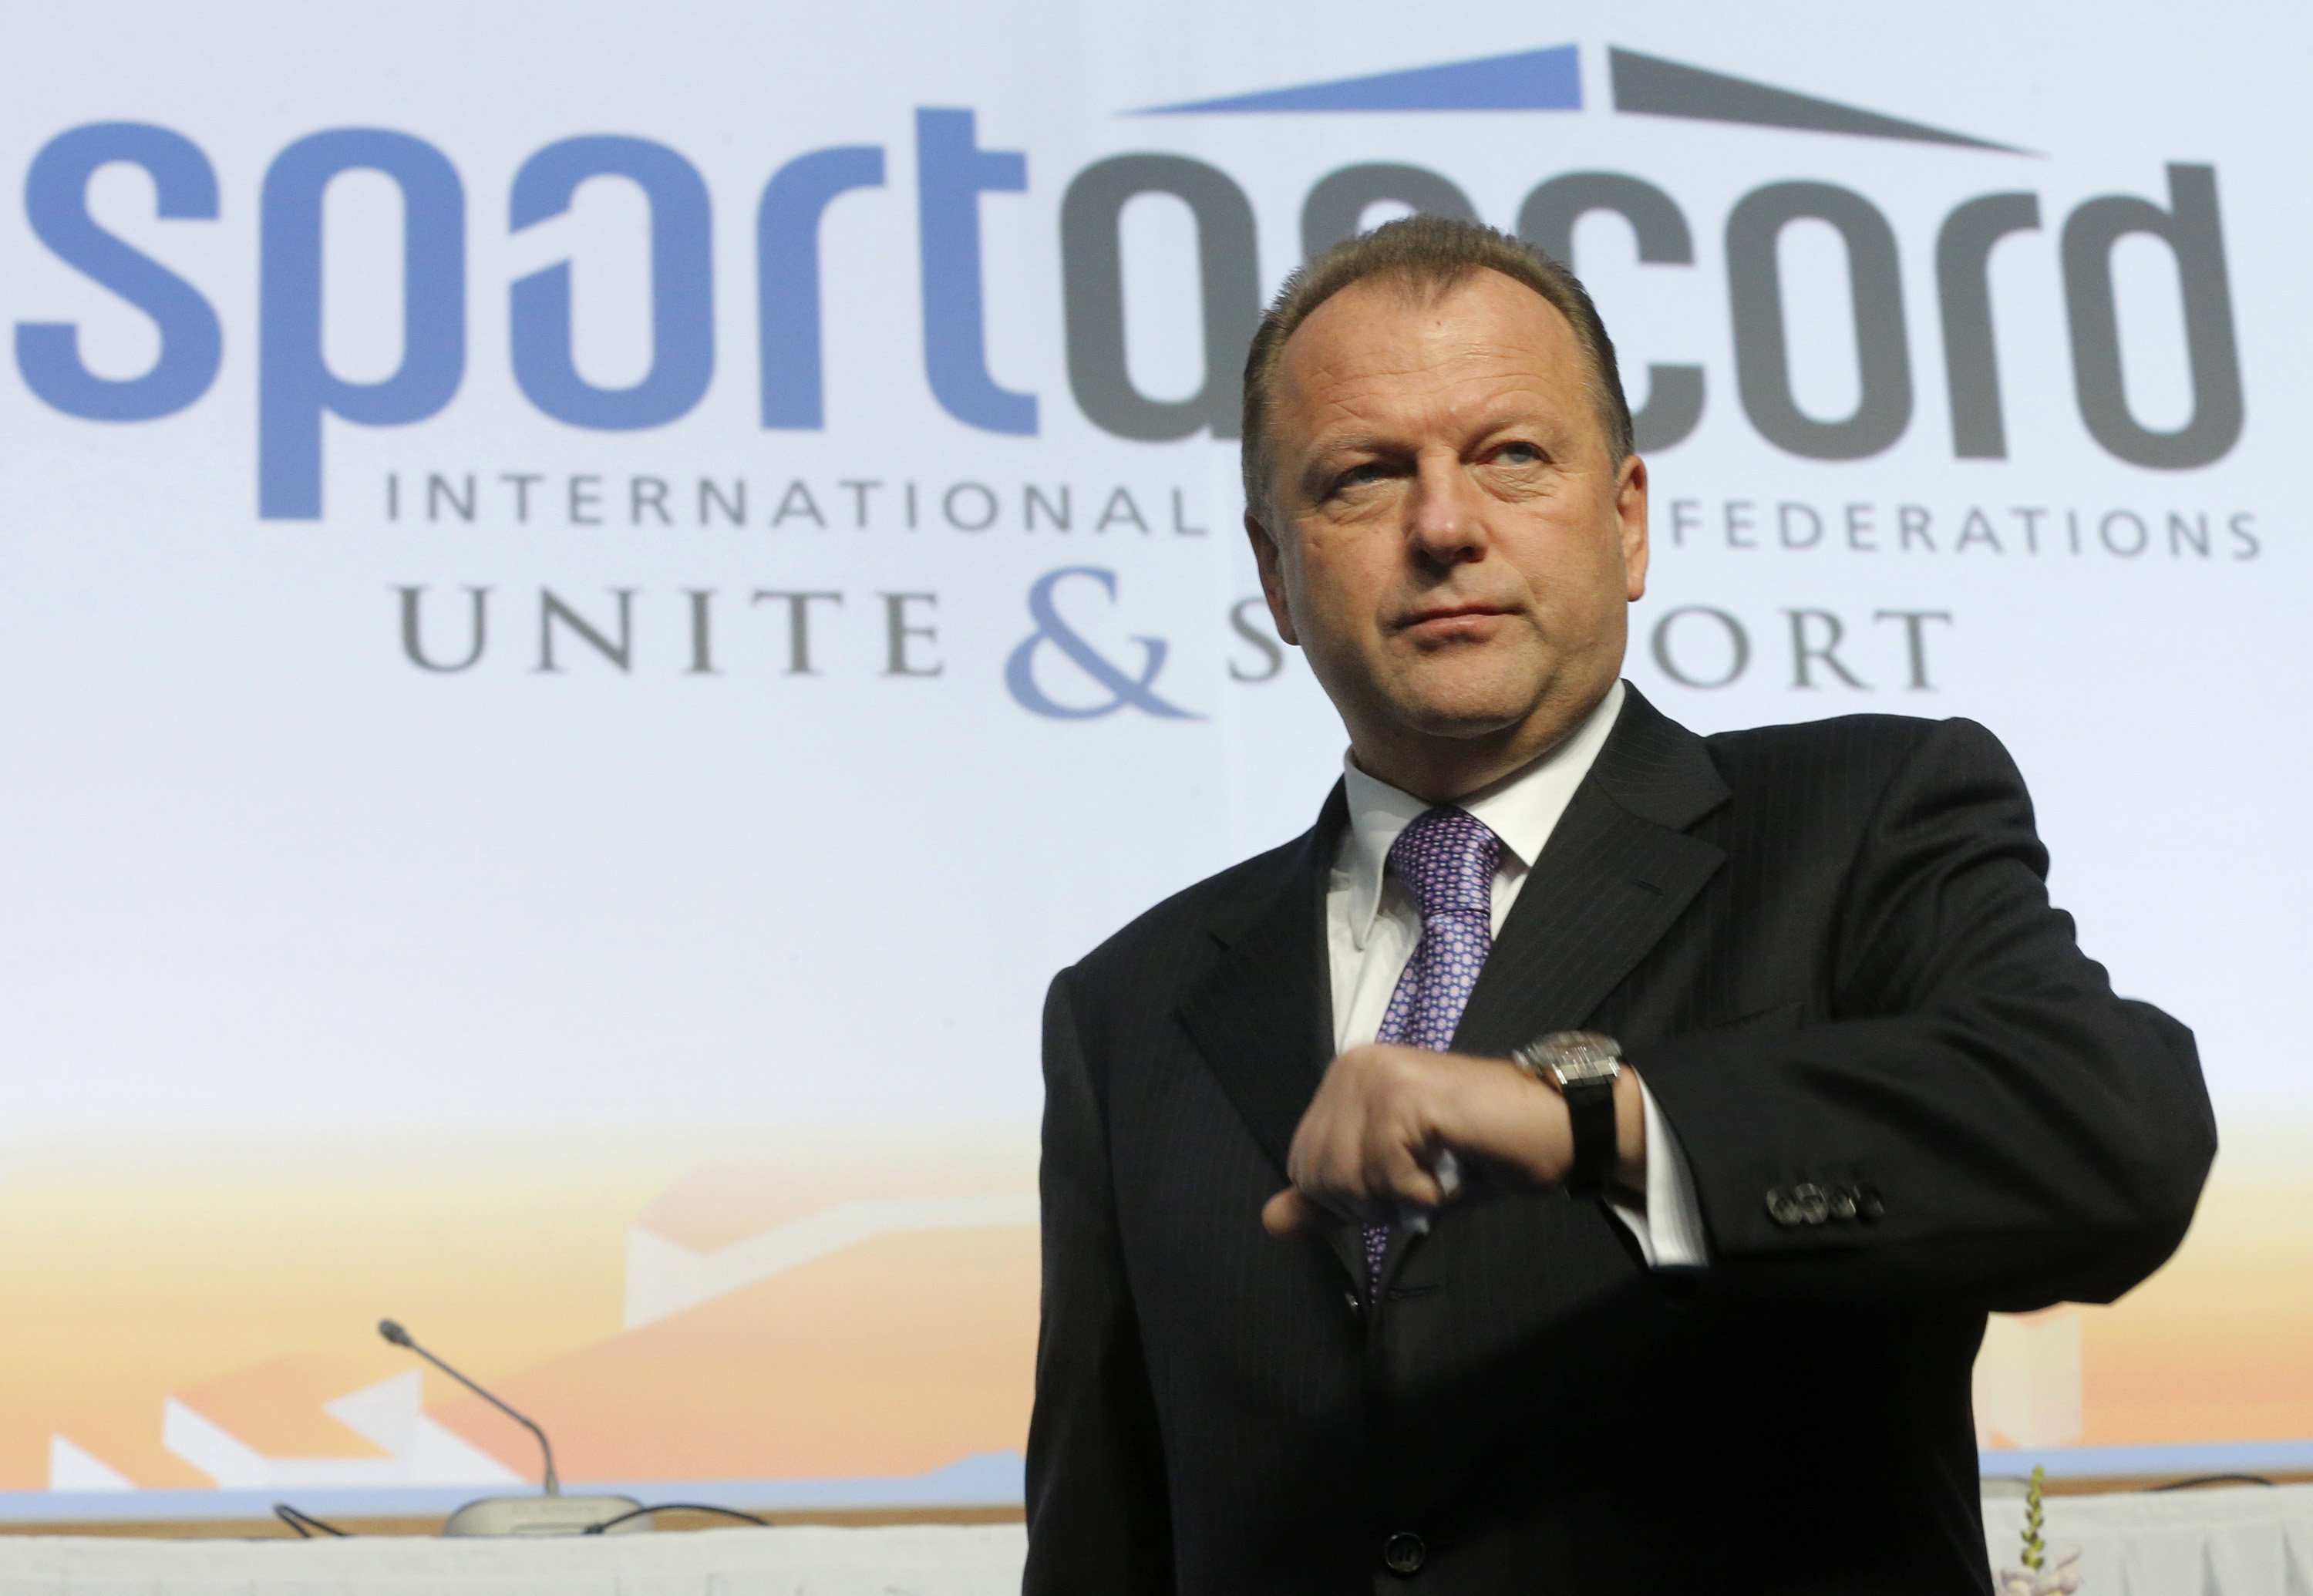 FILE - In this Friday, May 31, 2013 file photo, Marius Vizer, president of the International Judo Federation, (IJF) attends the SportAccord International Convention in St. Petersburg, Russia. The head of umbrella body SportAccord has issued Thursday May 2